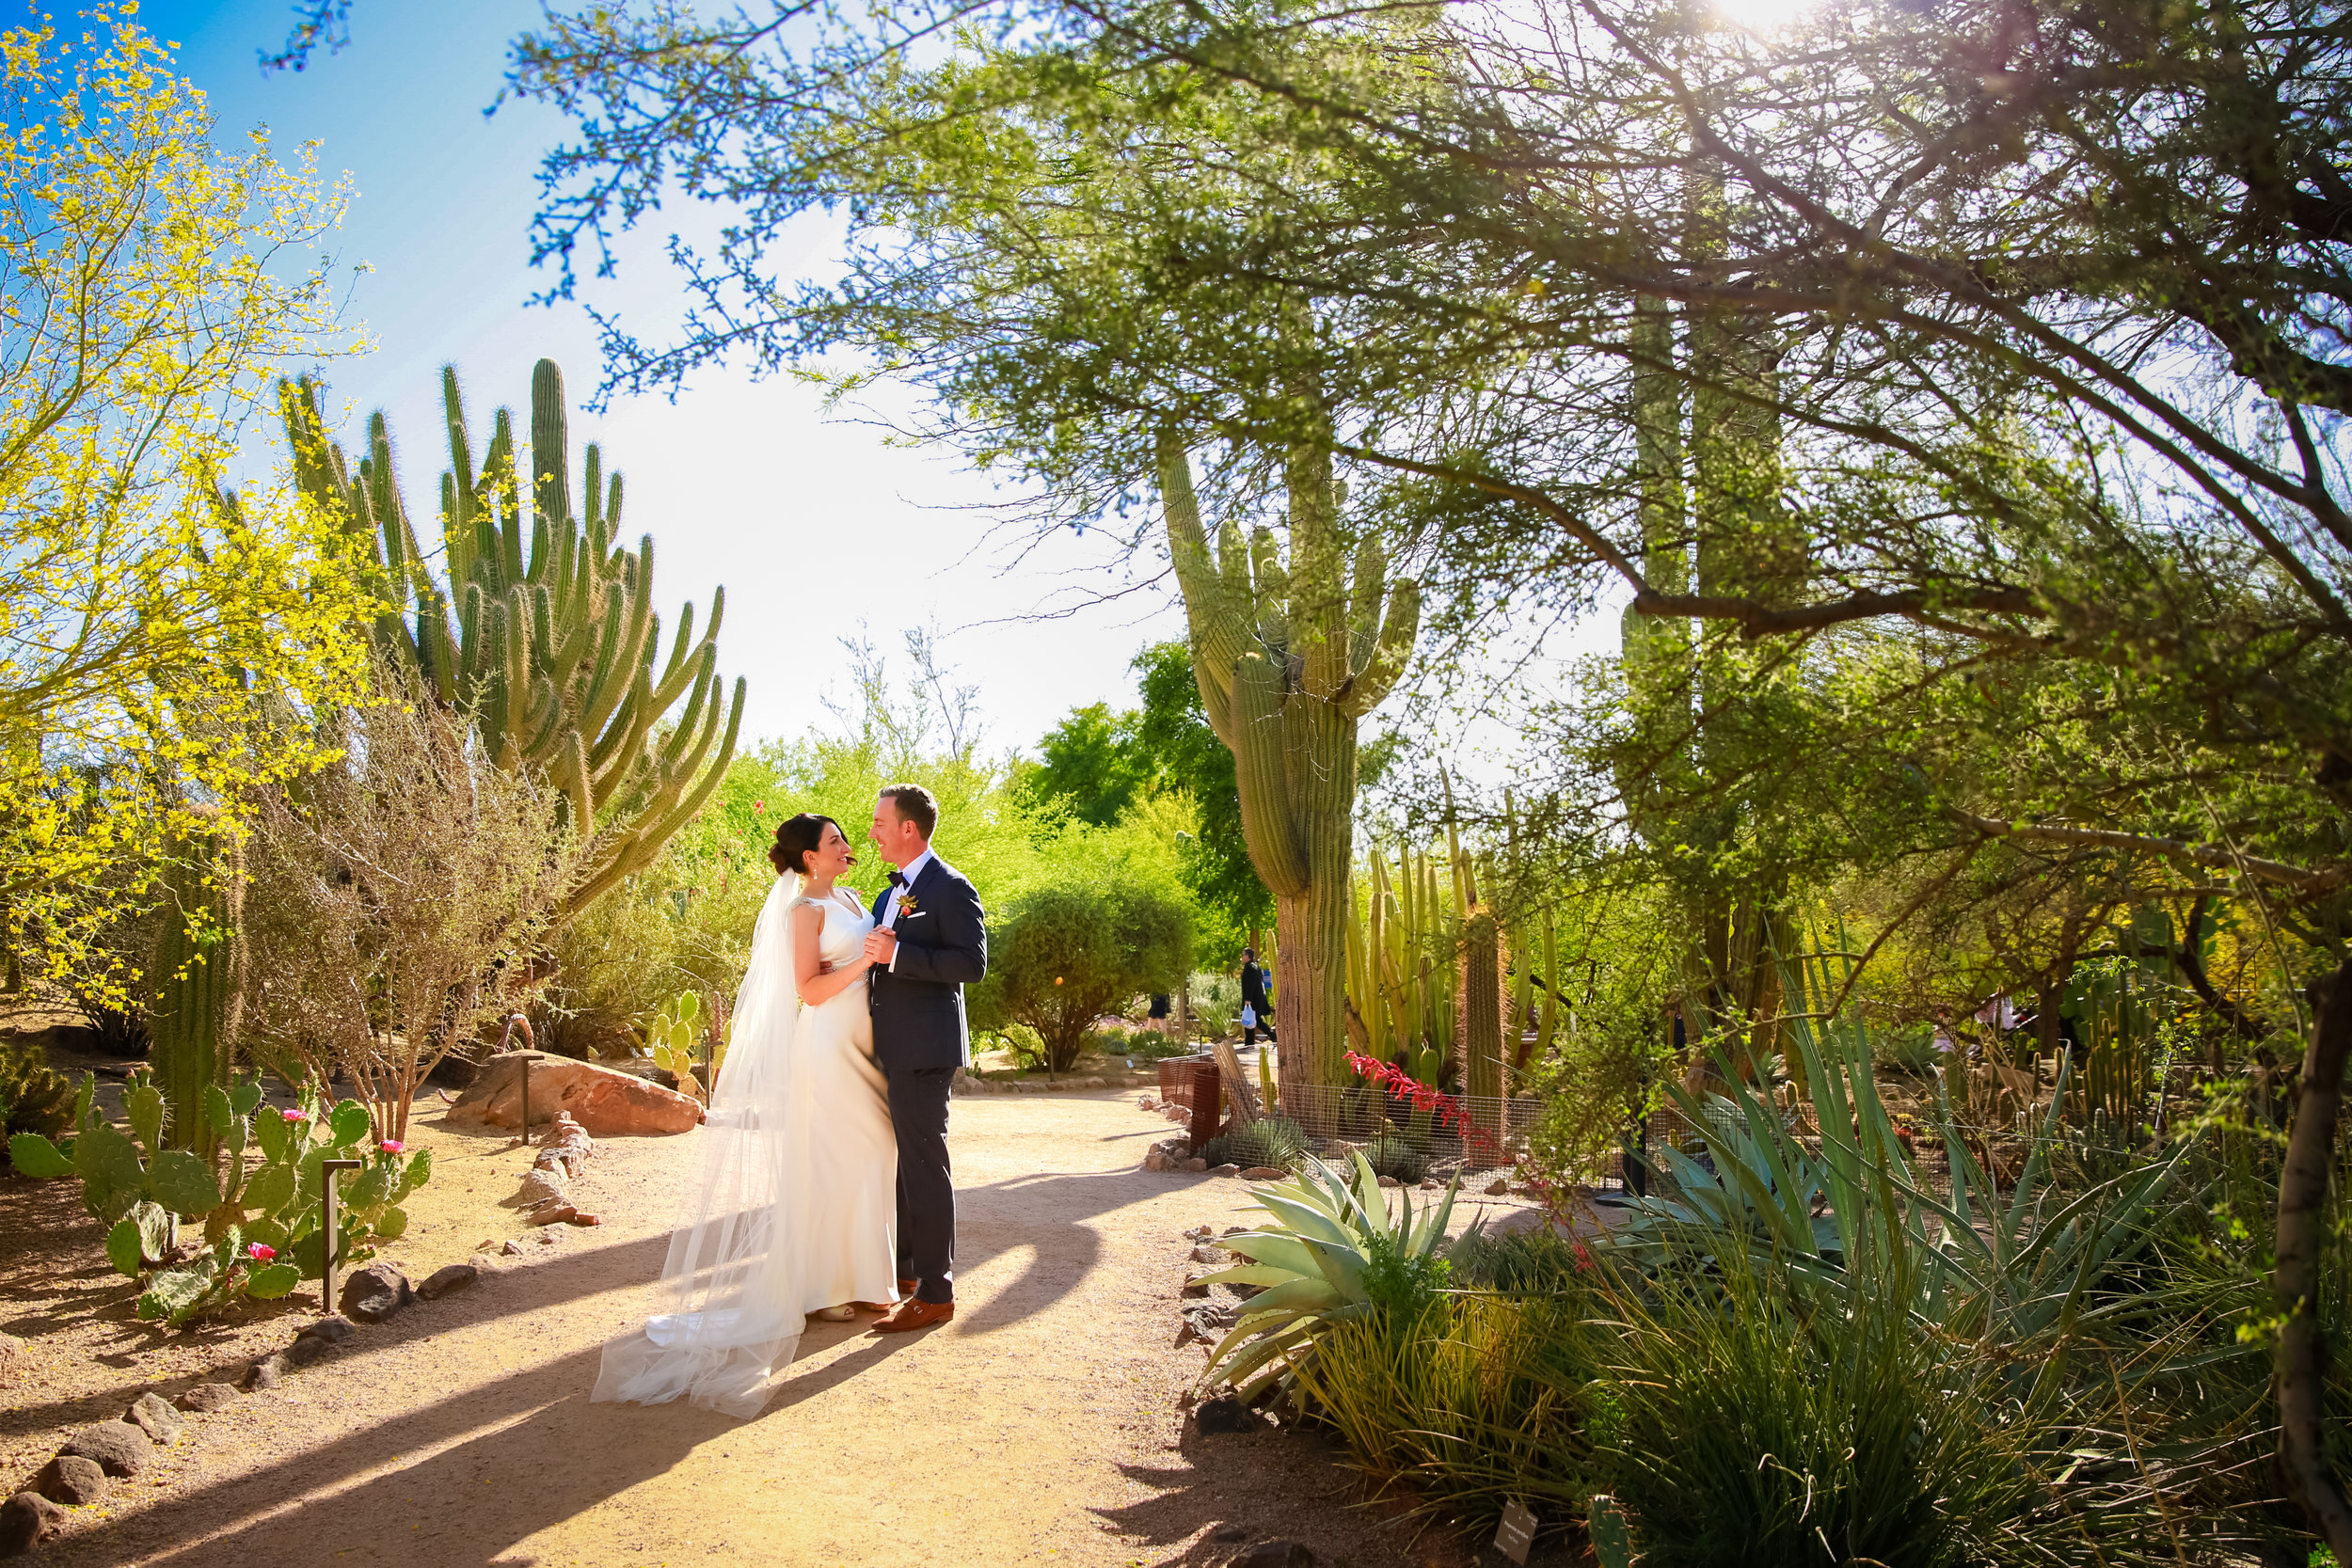 11 first look bride and groom bride and groom candid pictures bride and groom poses Mod Wed Photography Life Design Events .jpg